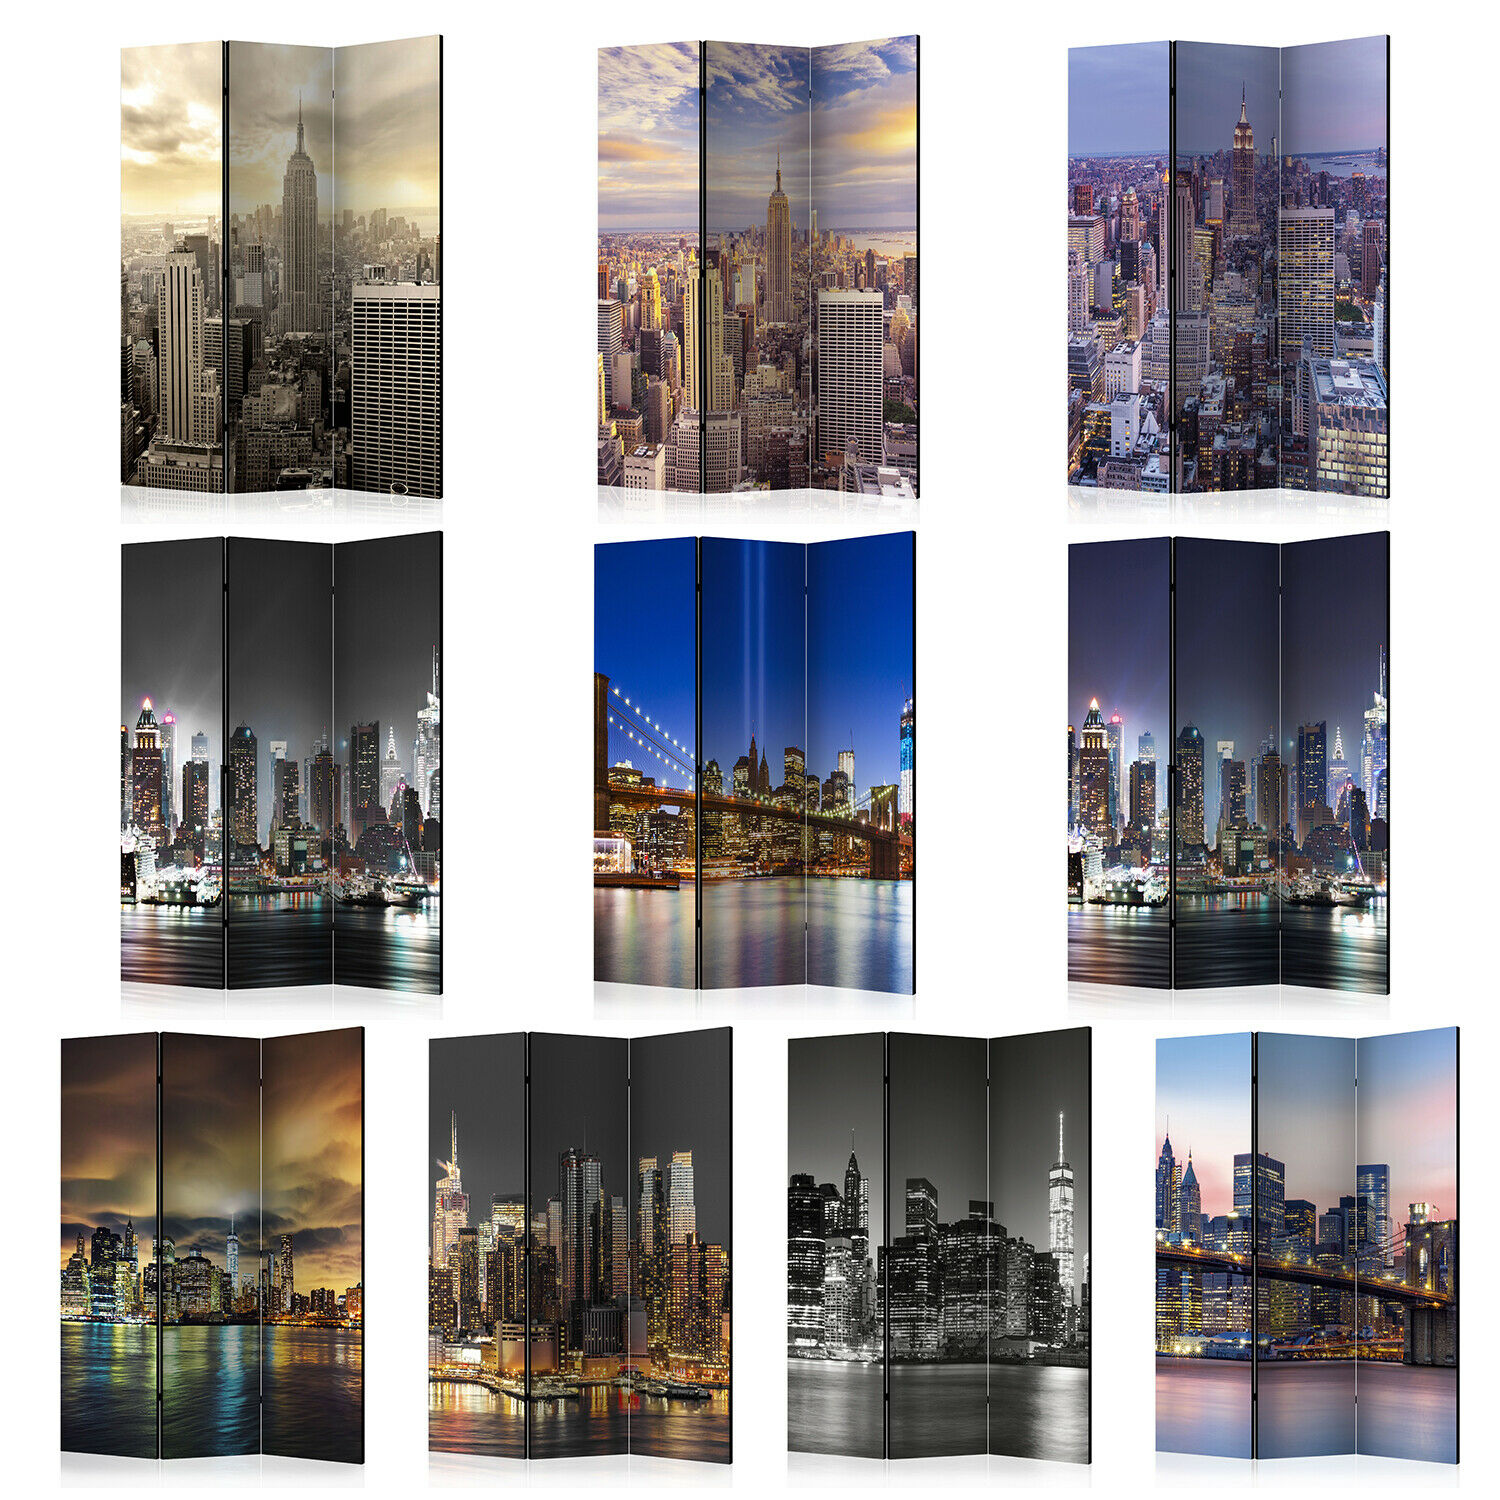 Folding Screen Room Divider Non-Woven Printed New York 10 patterns d-A-0042-z-c